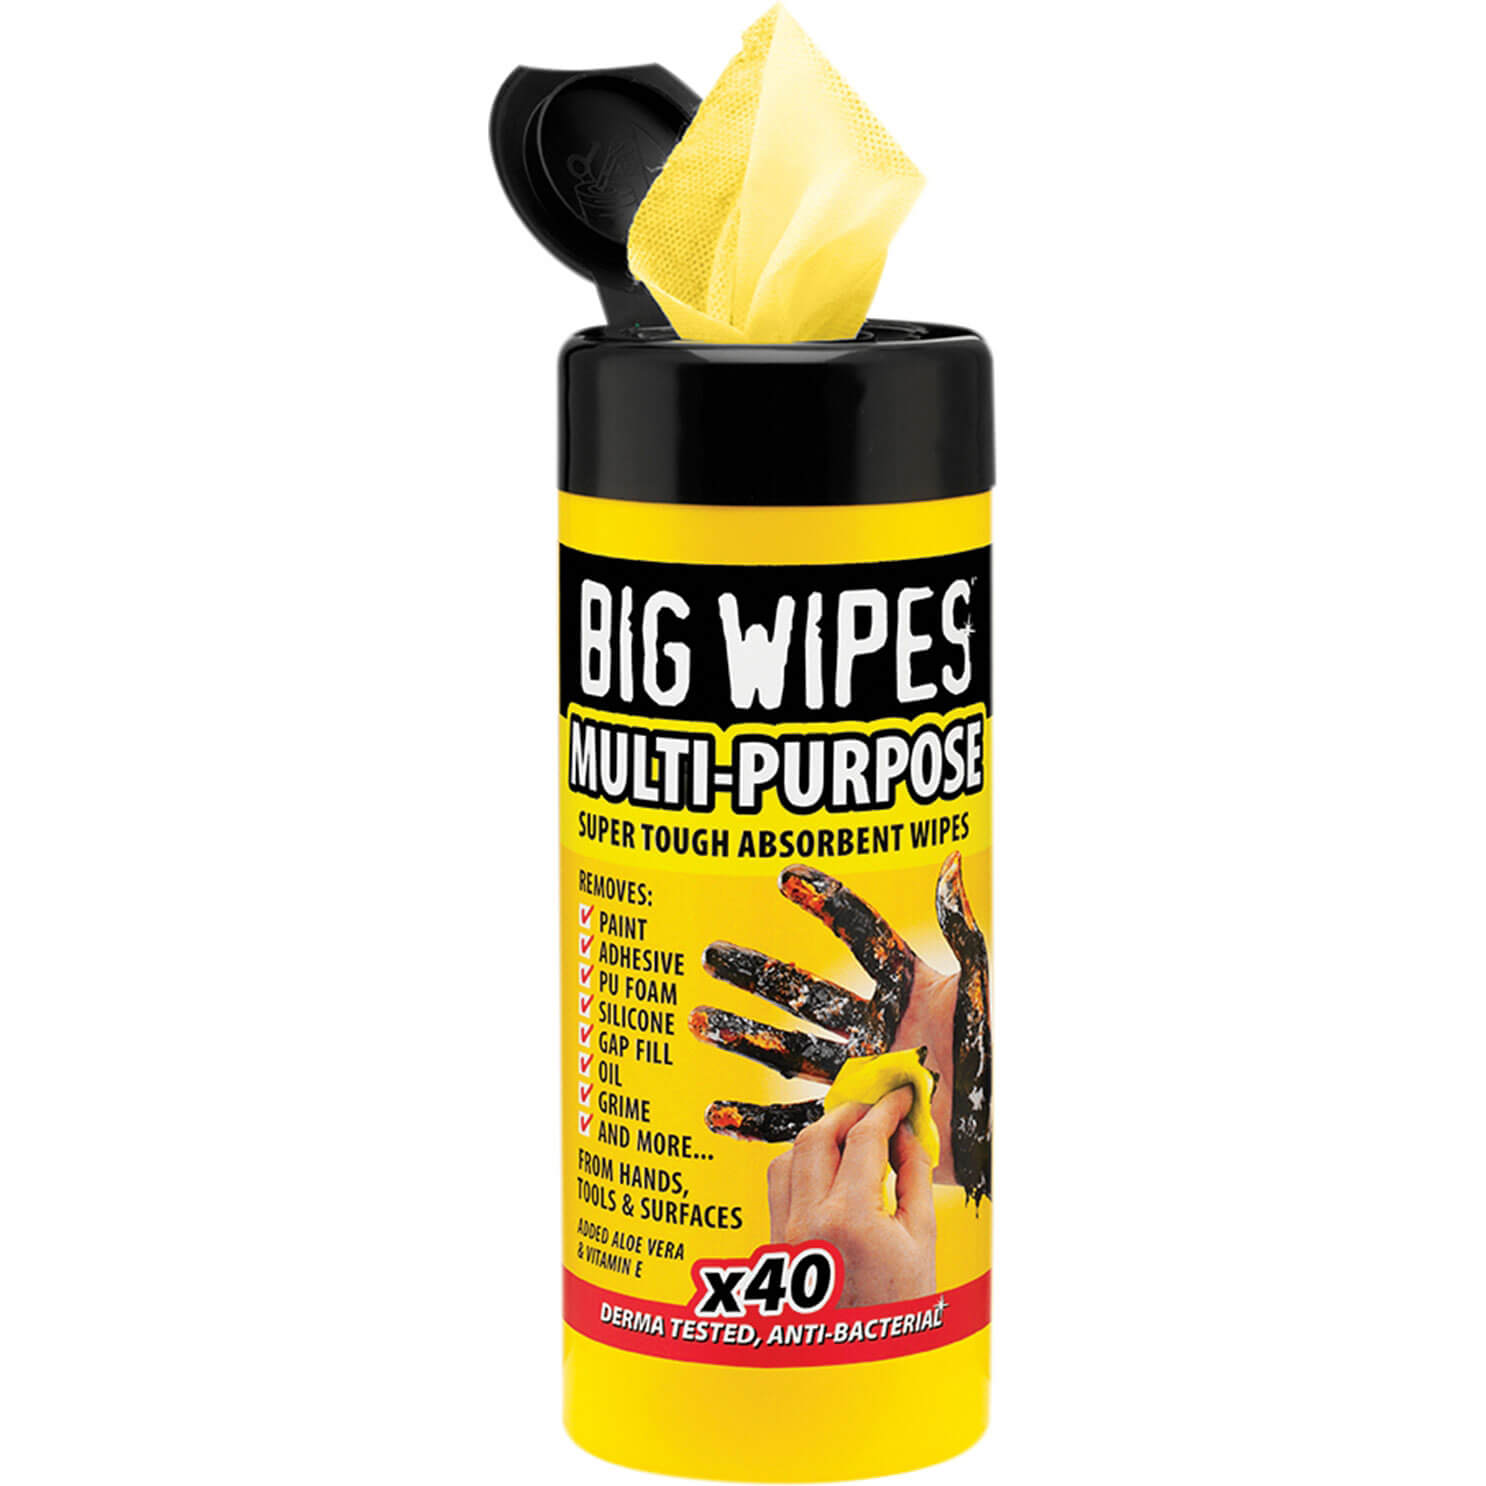 Image of Big Wipes Industrial Cleaning Wipes Pack of 40